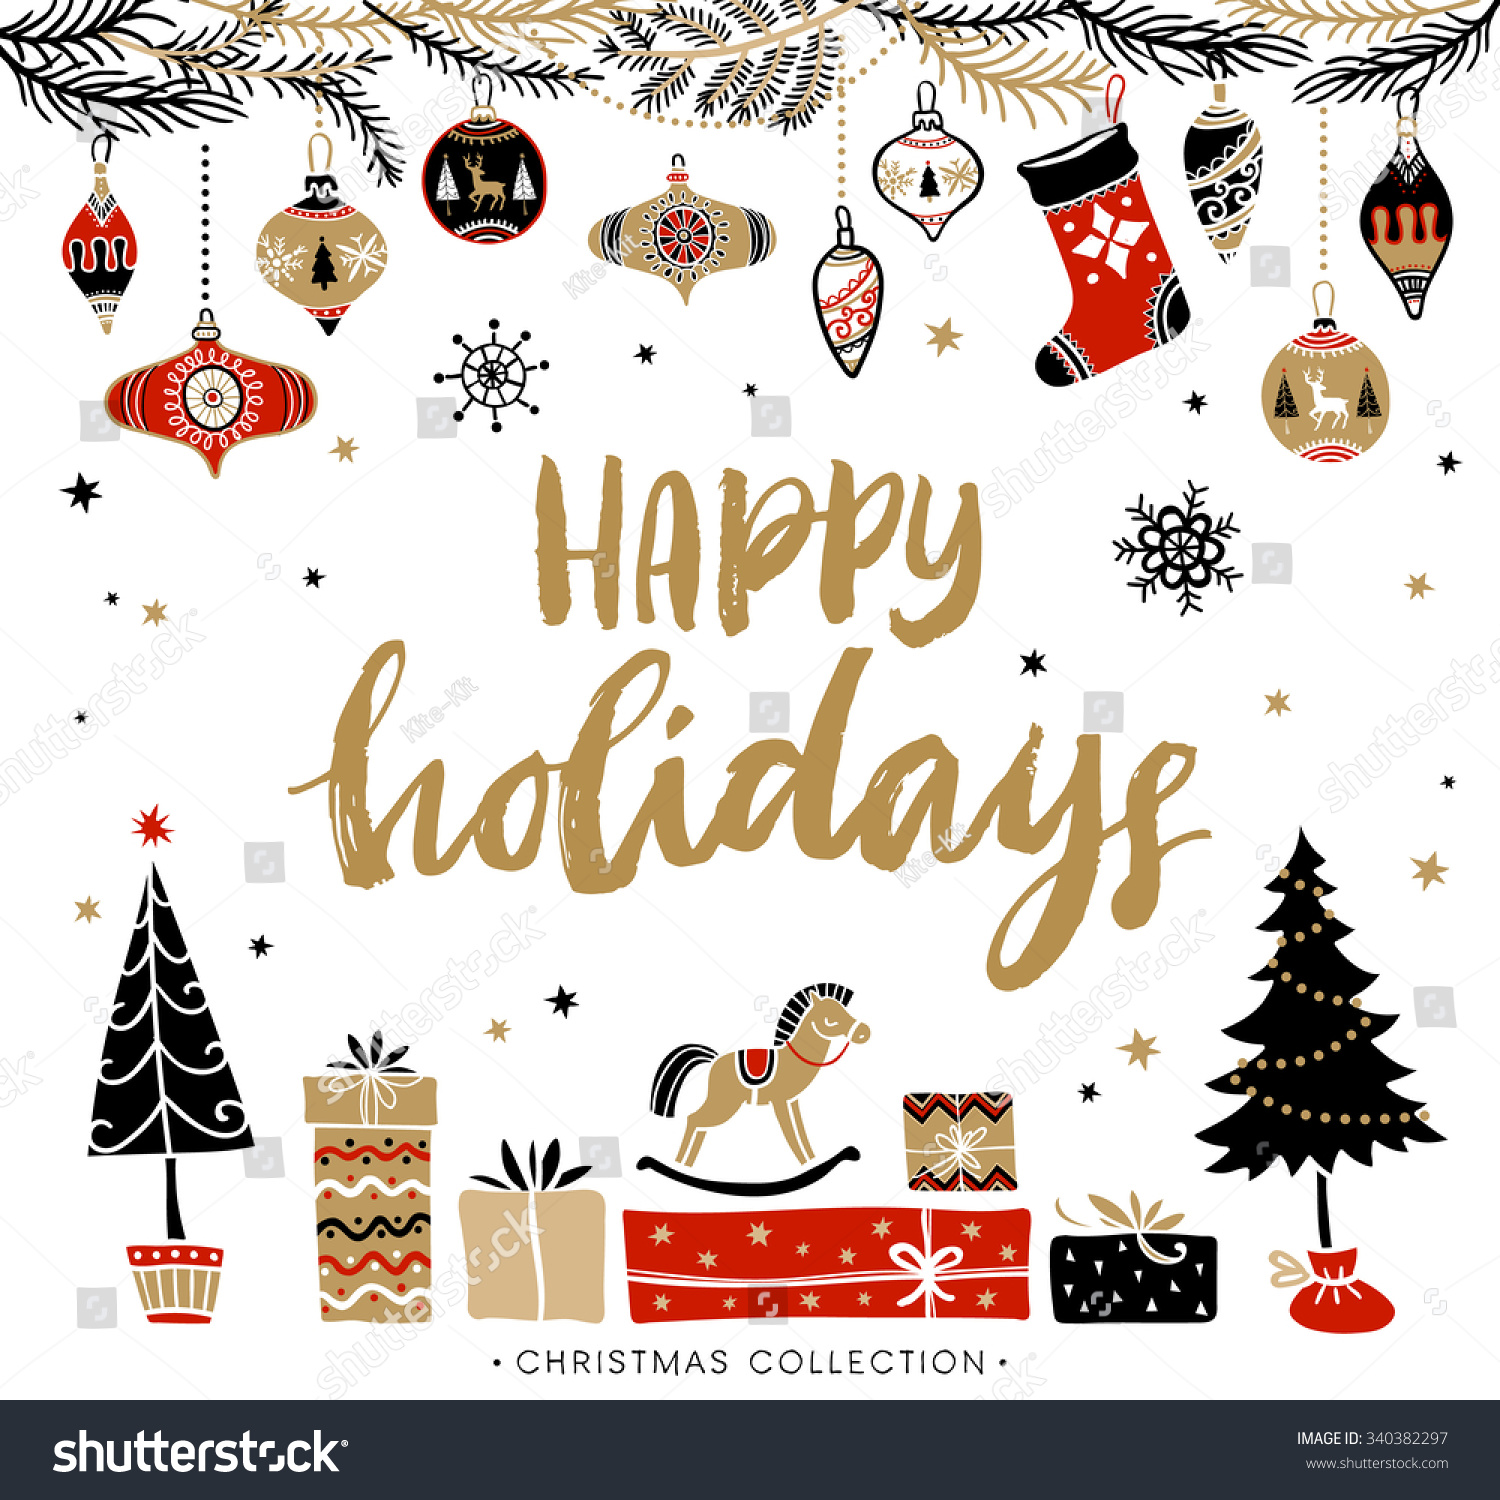 Happy Holidays Christmas Greeting Card Calligraphy Stock Vector